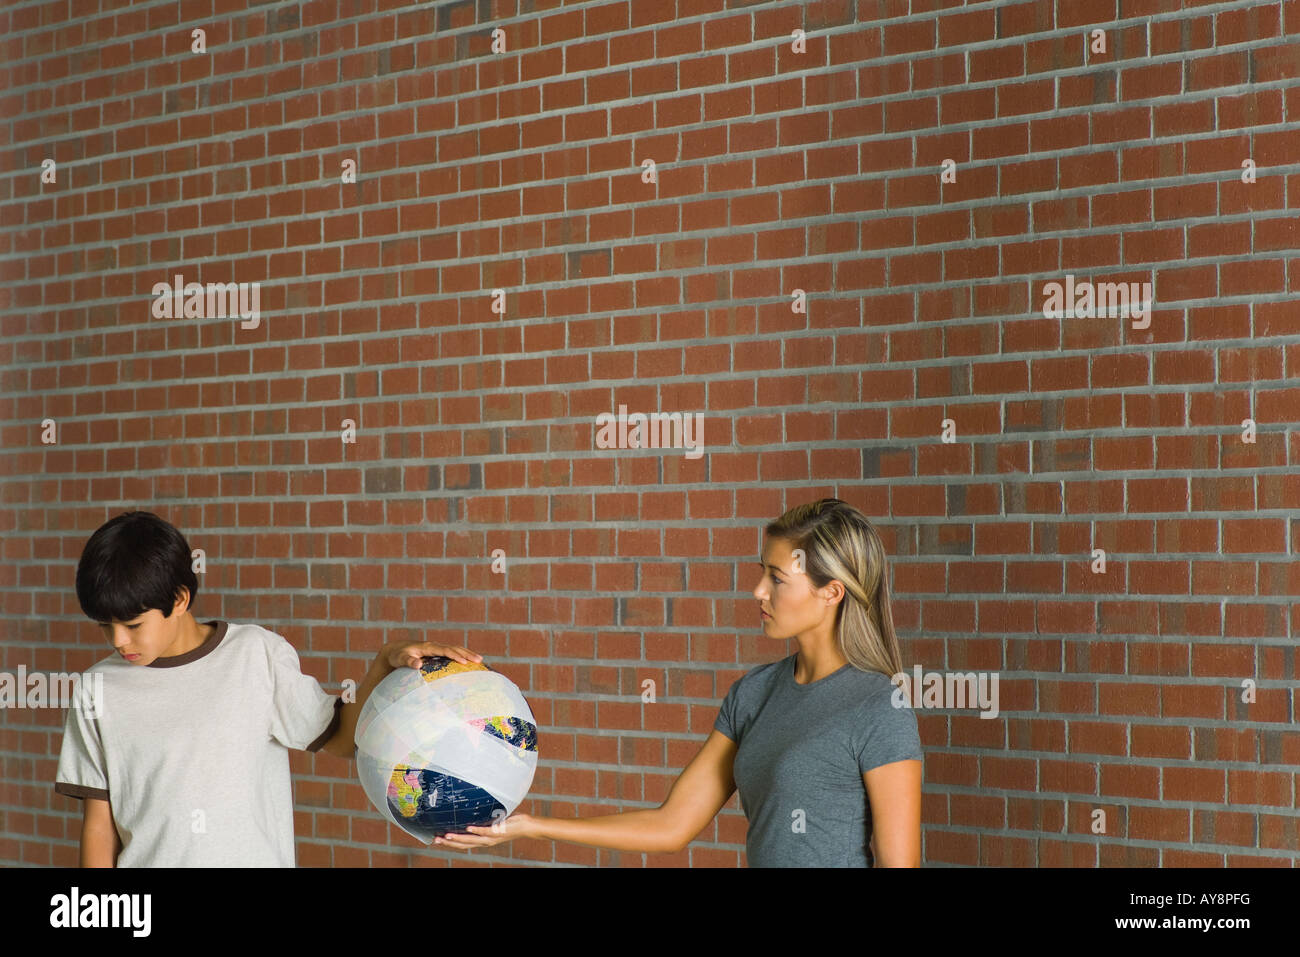 Woman and boy holding globe wrapped in bandages, woman looking at boy, boy looking down - Stock Image